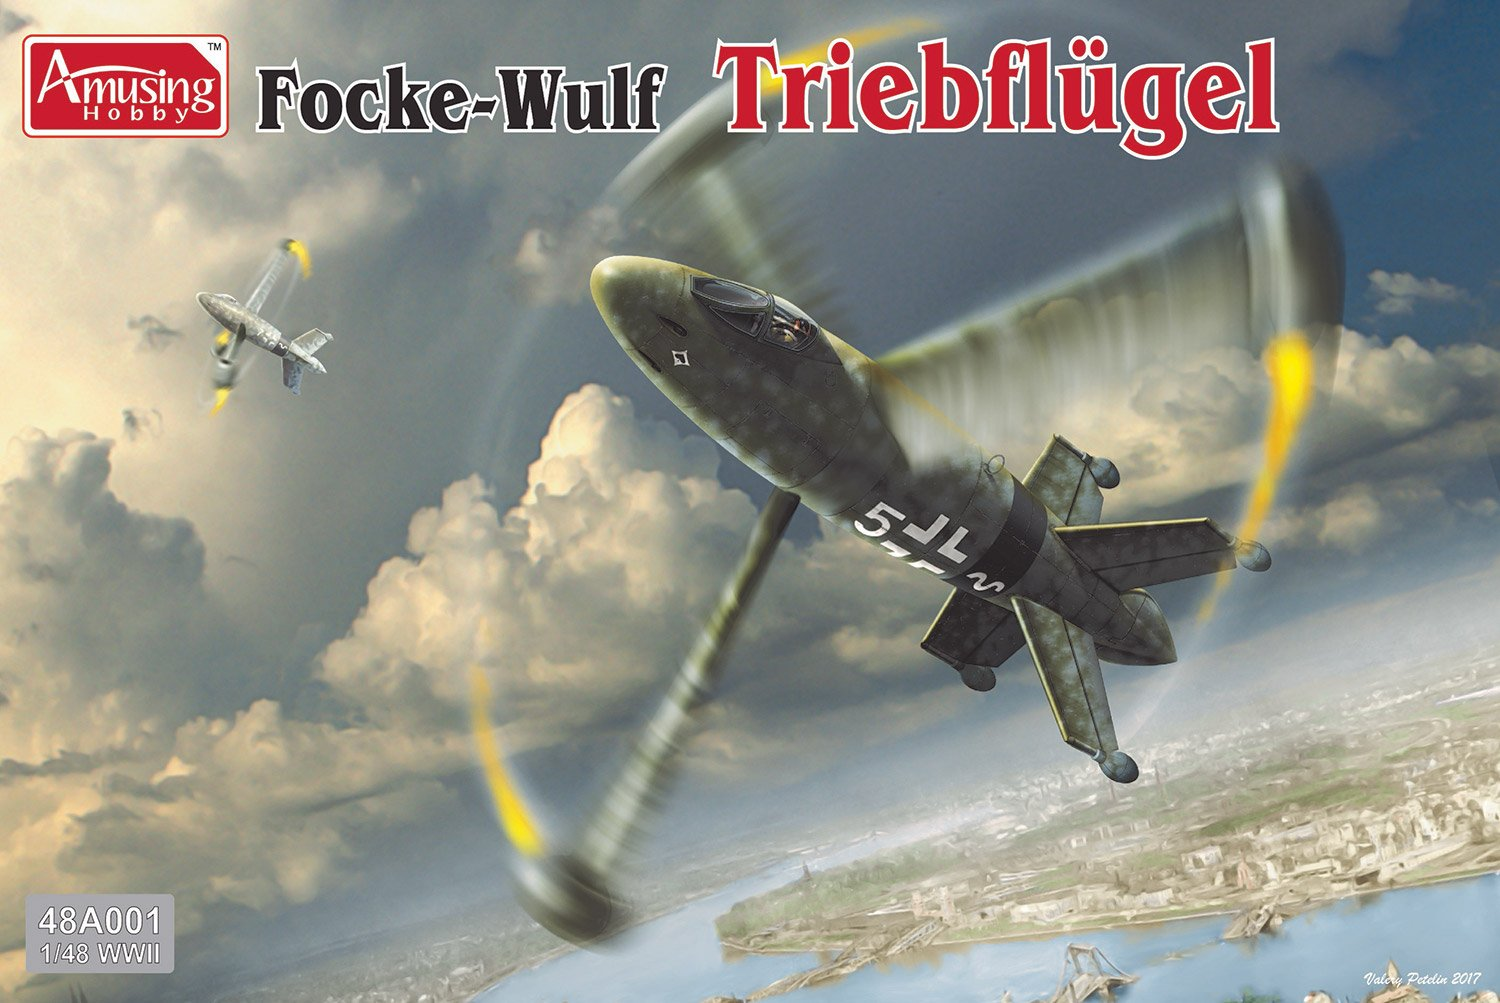 1:48 Focke-Wulf Triebflügel - Non-LSM Reviews - Large Scale